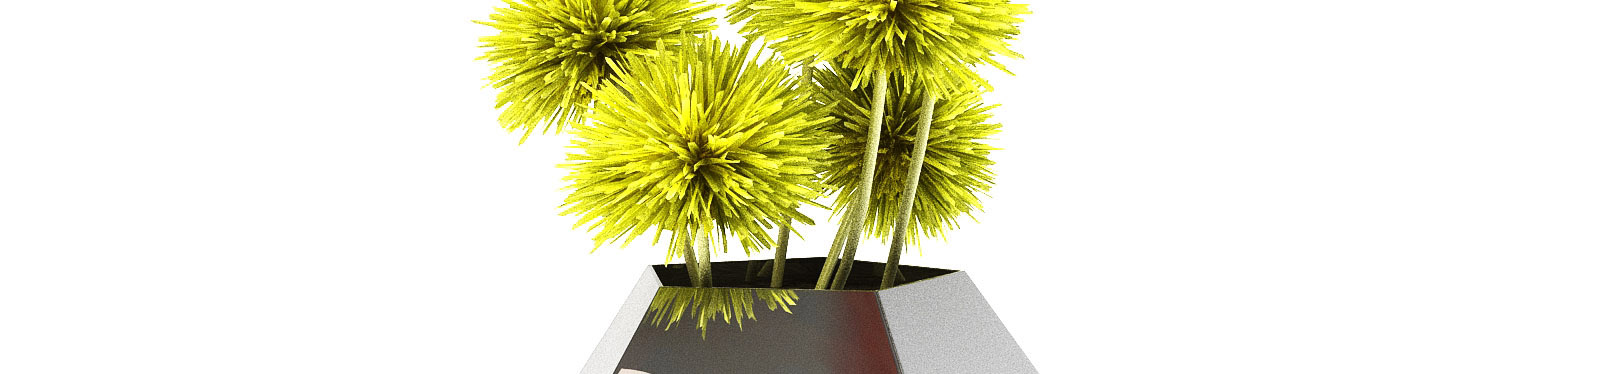 DOSCH 3D Modern Floral Decoration